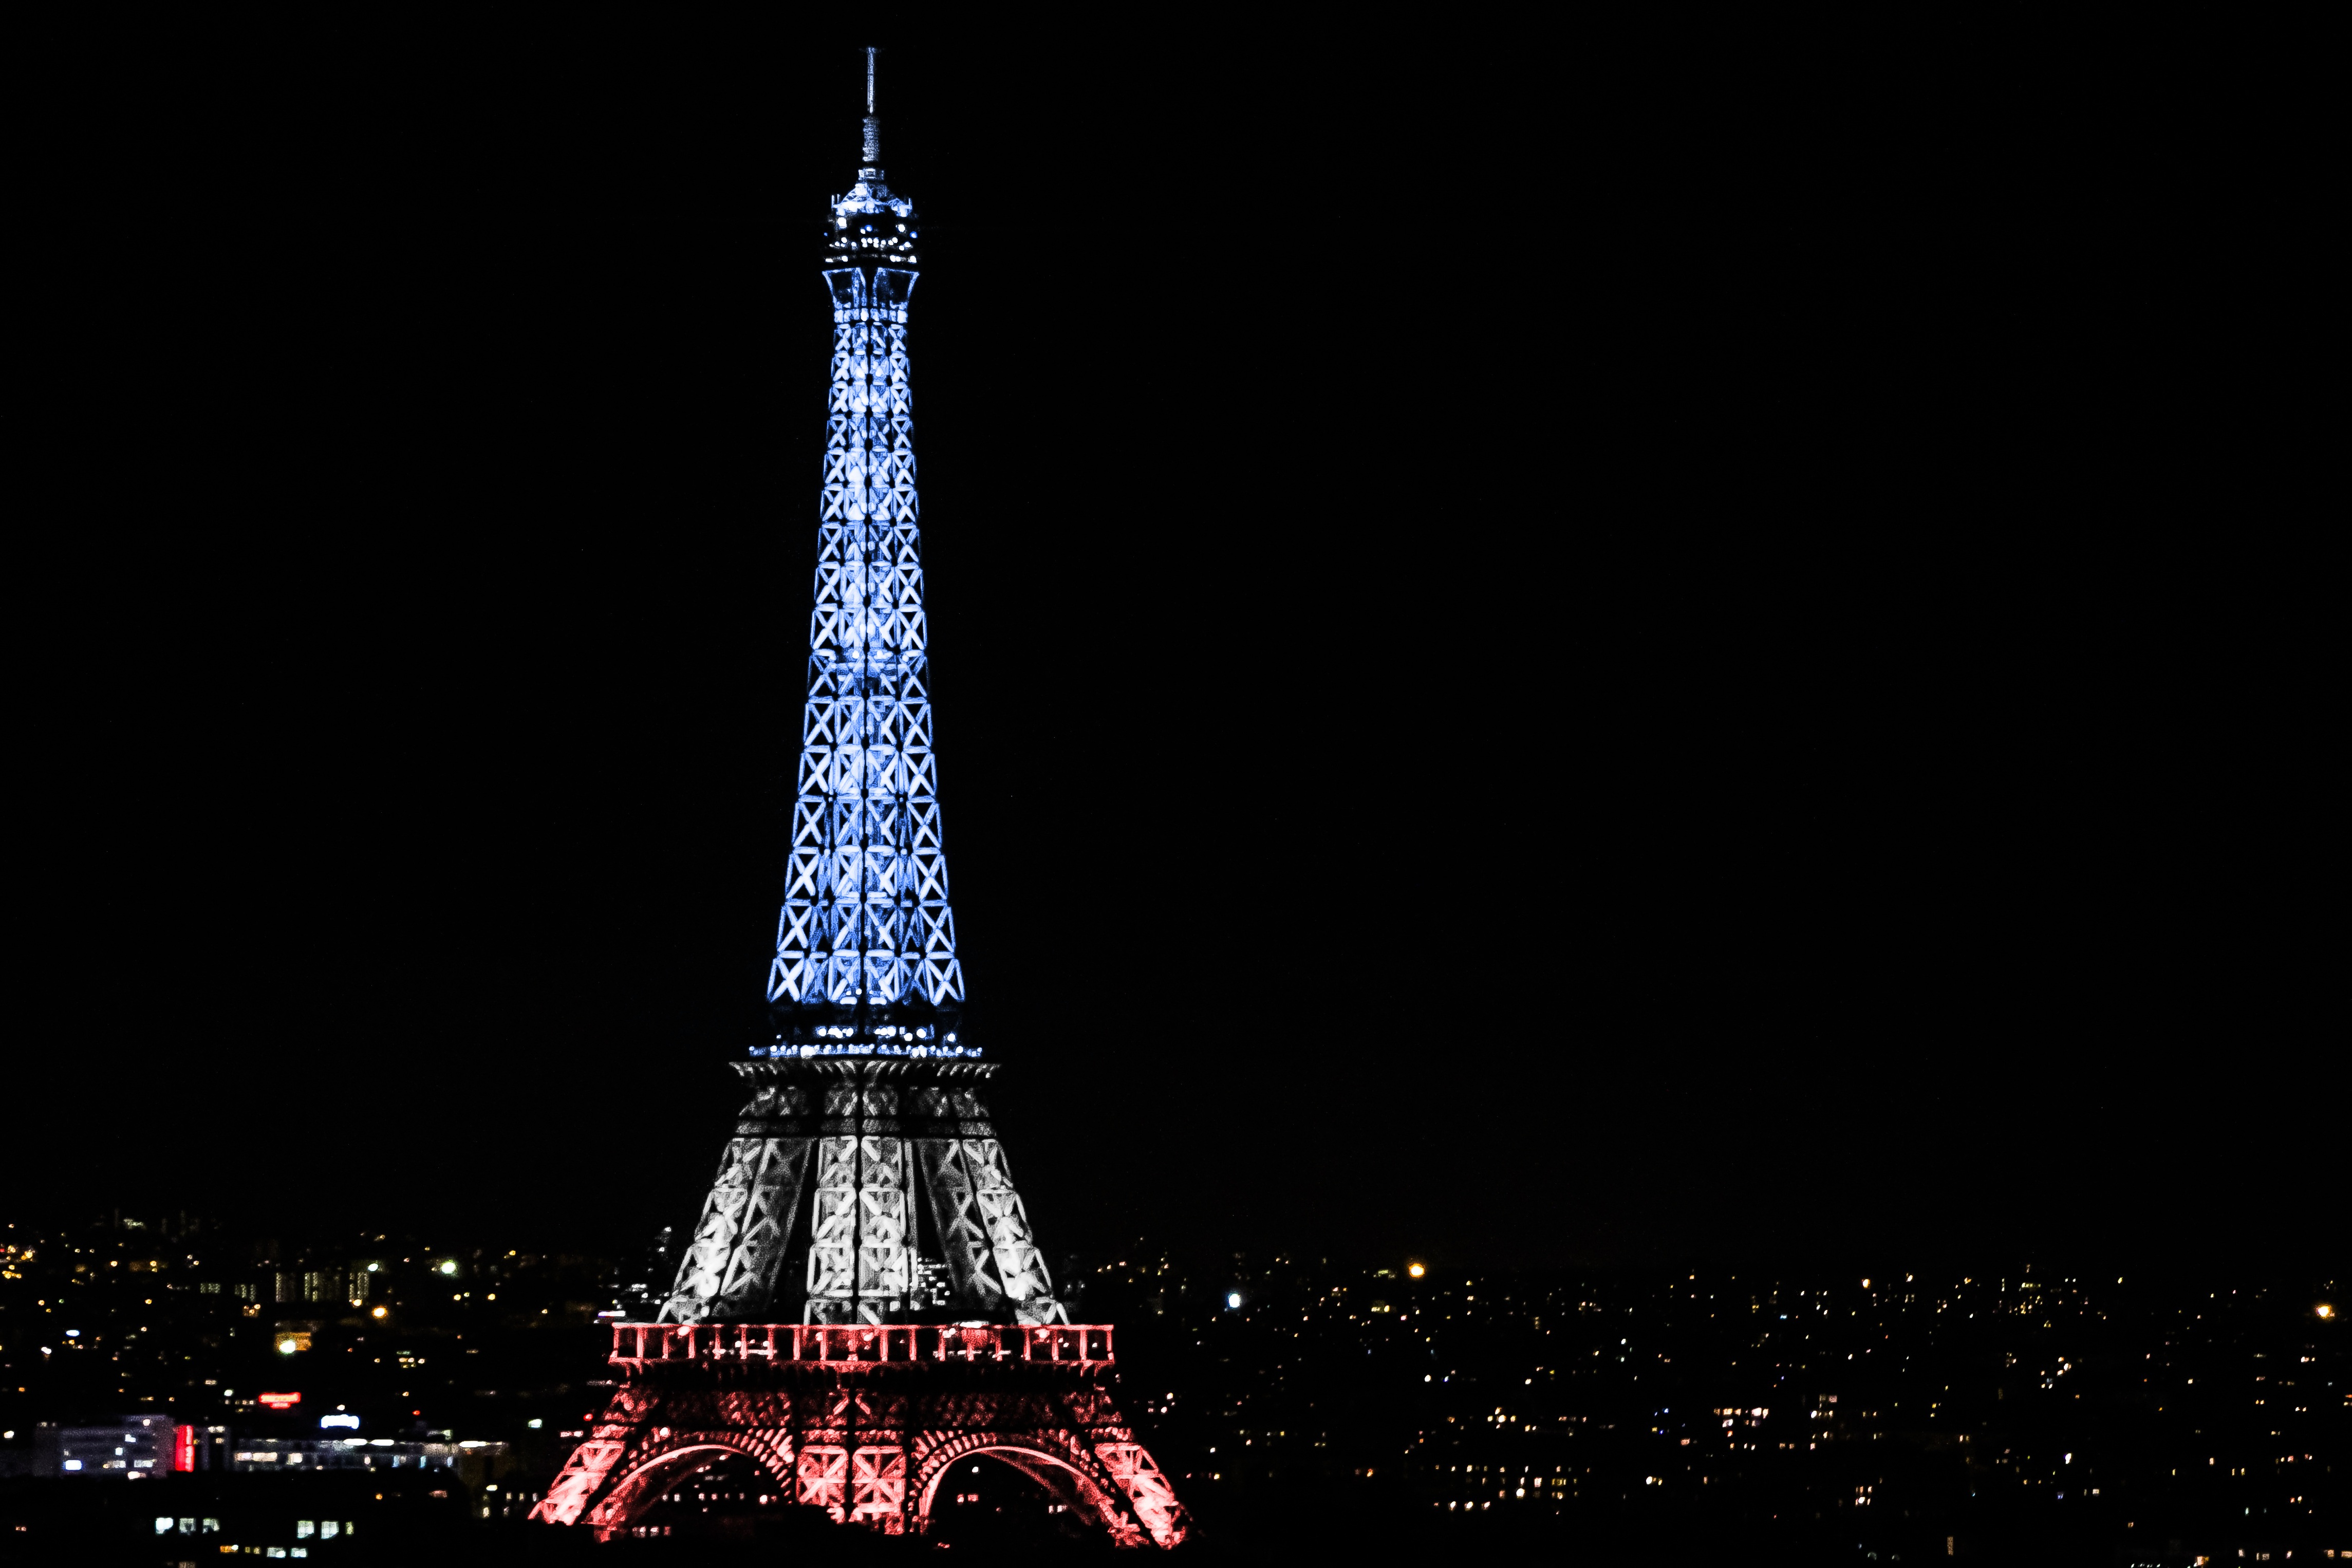 Eiffel Tower Paris France Night Wallpapers Hd Wallpapers